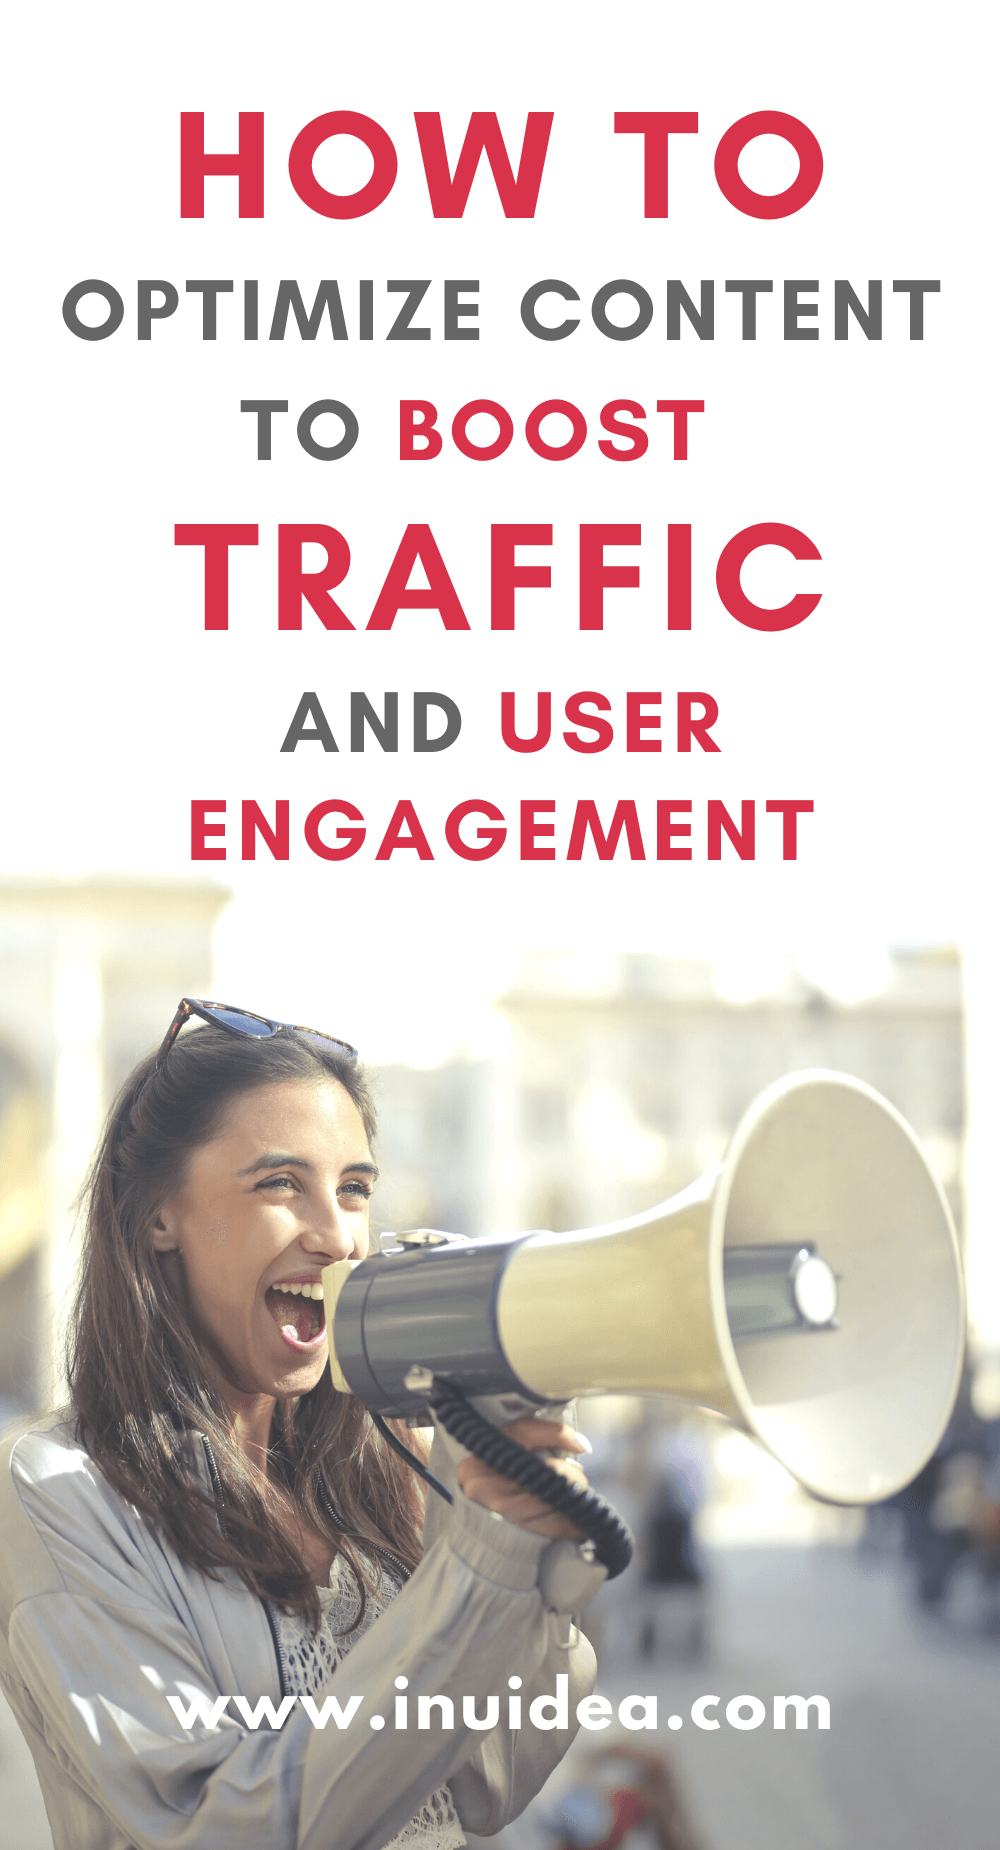 Optimize Content to Boost Traffic and User Engagement